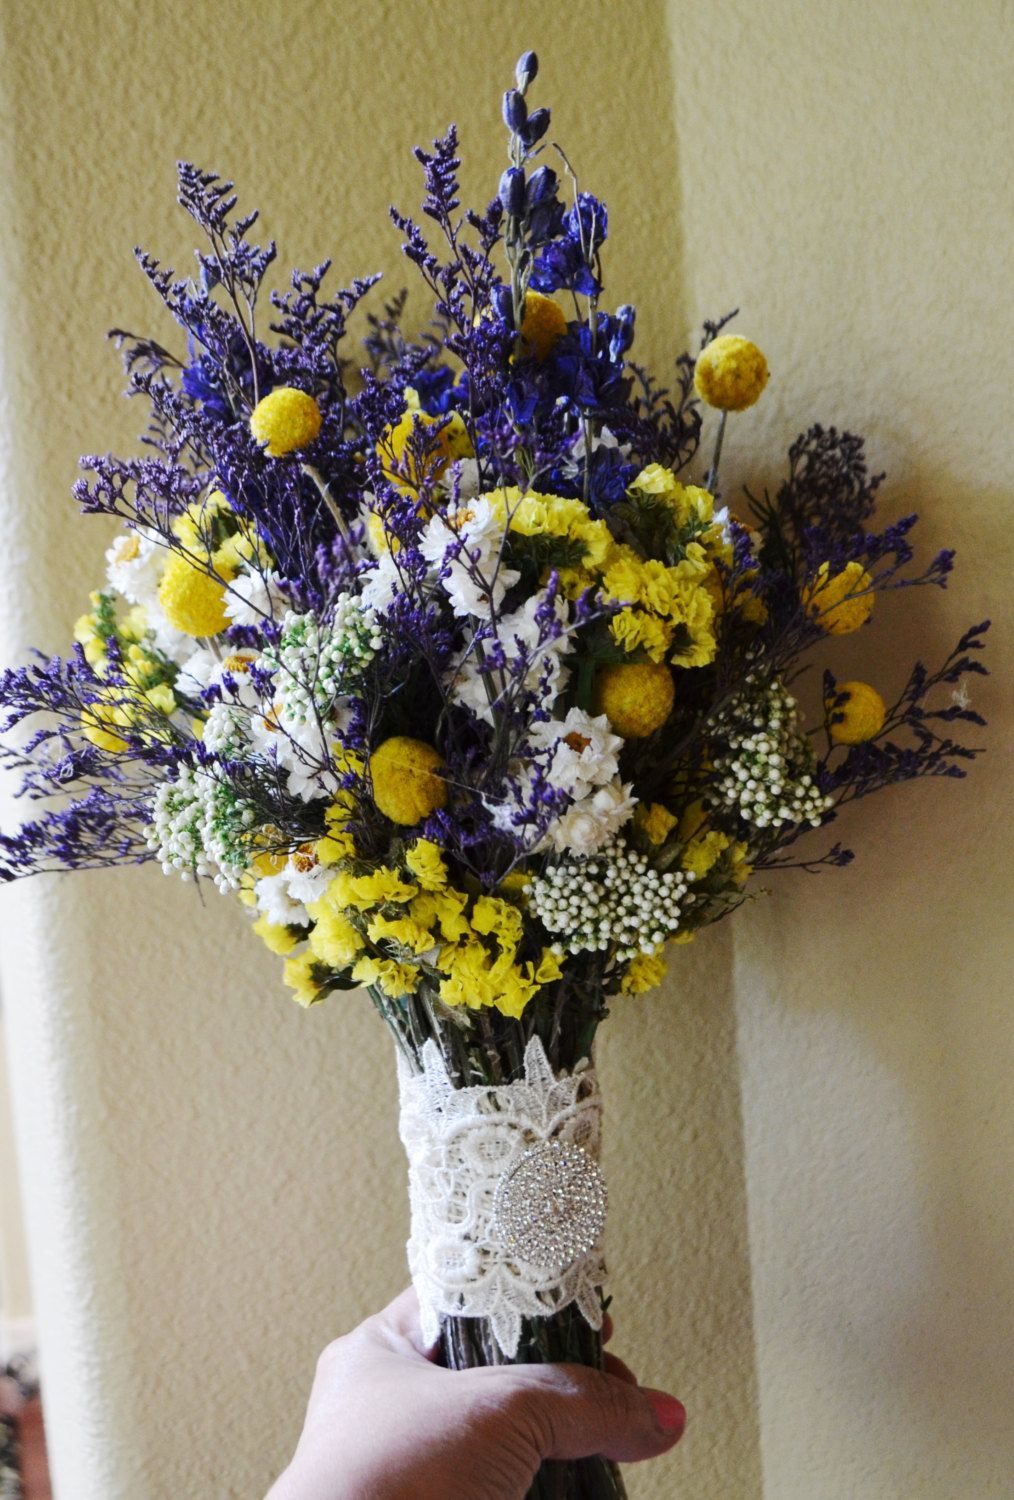 Beautiful Dried Wedding Bouquet of Purple Larkspur and caspia Yellow Craspedia and Statice Ammobium   - For Wedding  - Made to Order by ArtistryinFlorals on Etsy https://www.etsy.com/listing/208999017/beautiful-dried-wedding-bouquet-of